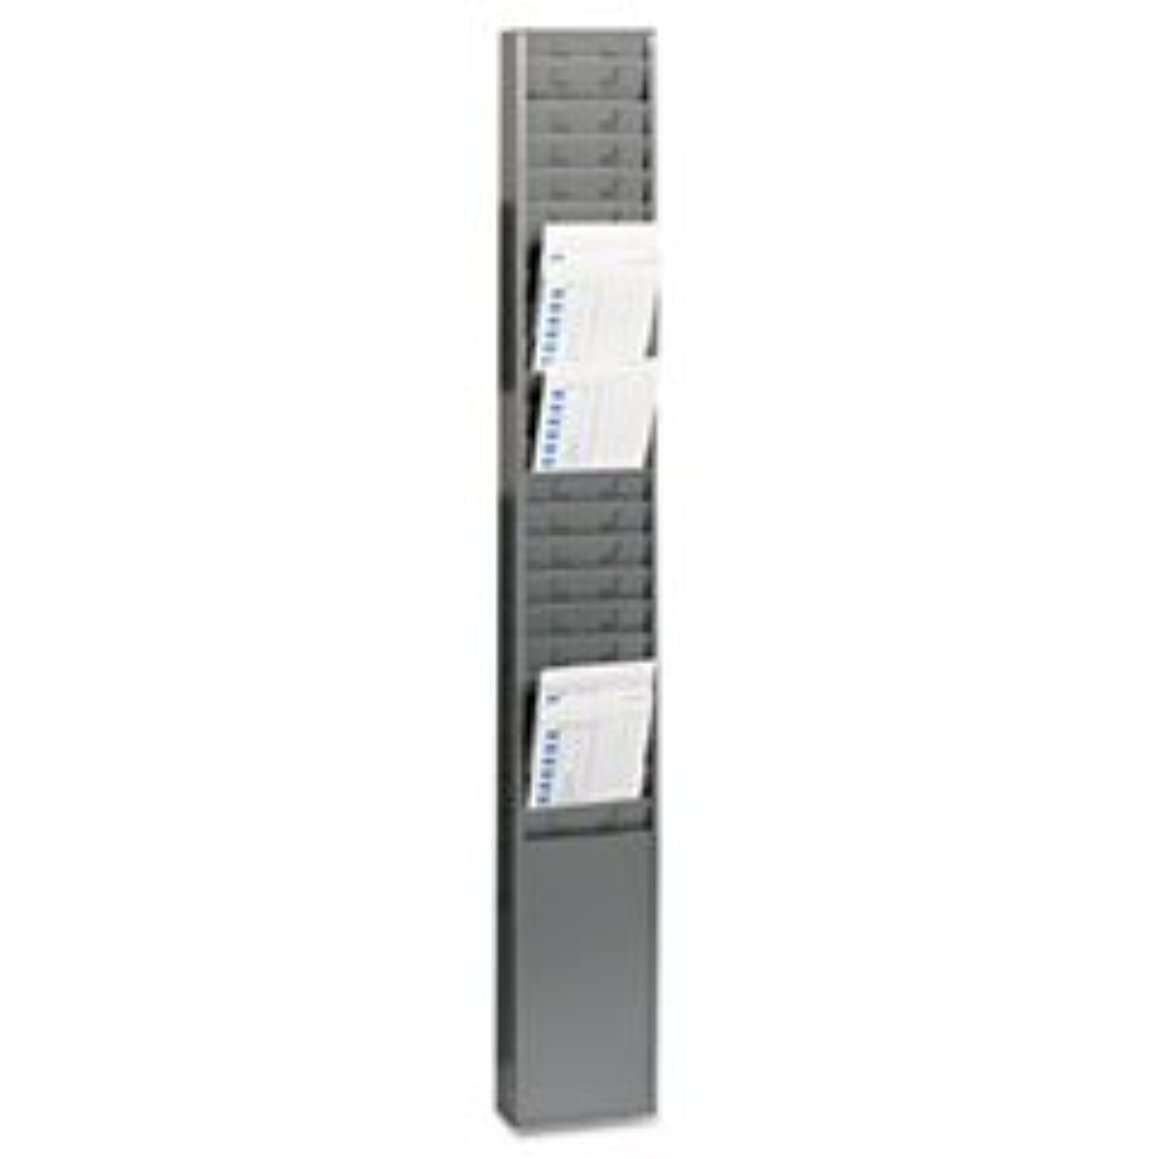 * Steel Time Card Rack with Fixed 4 1/2 x 5 Pockets